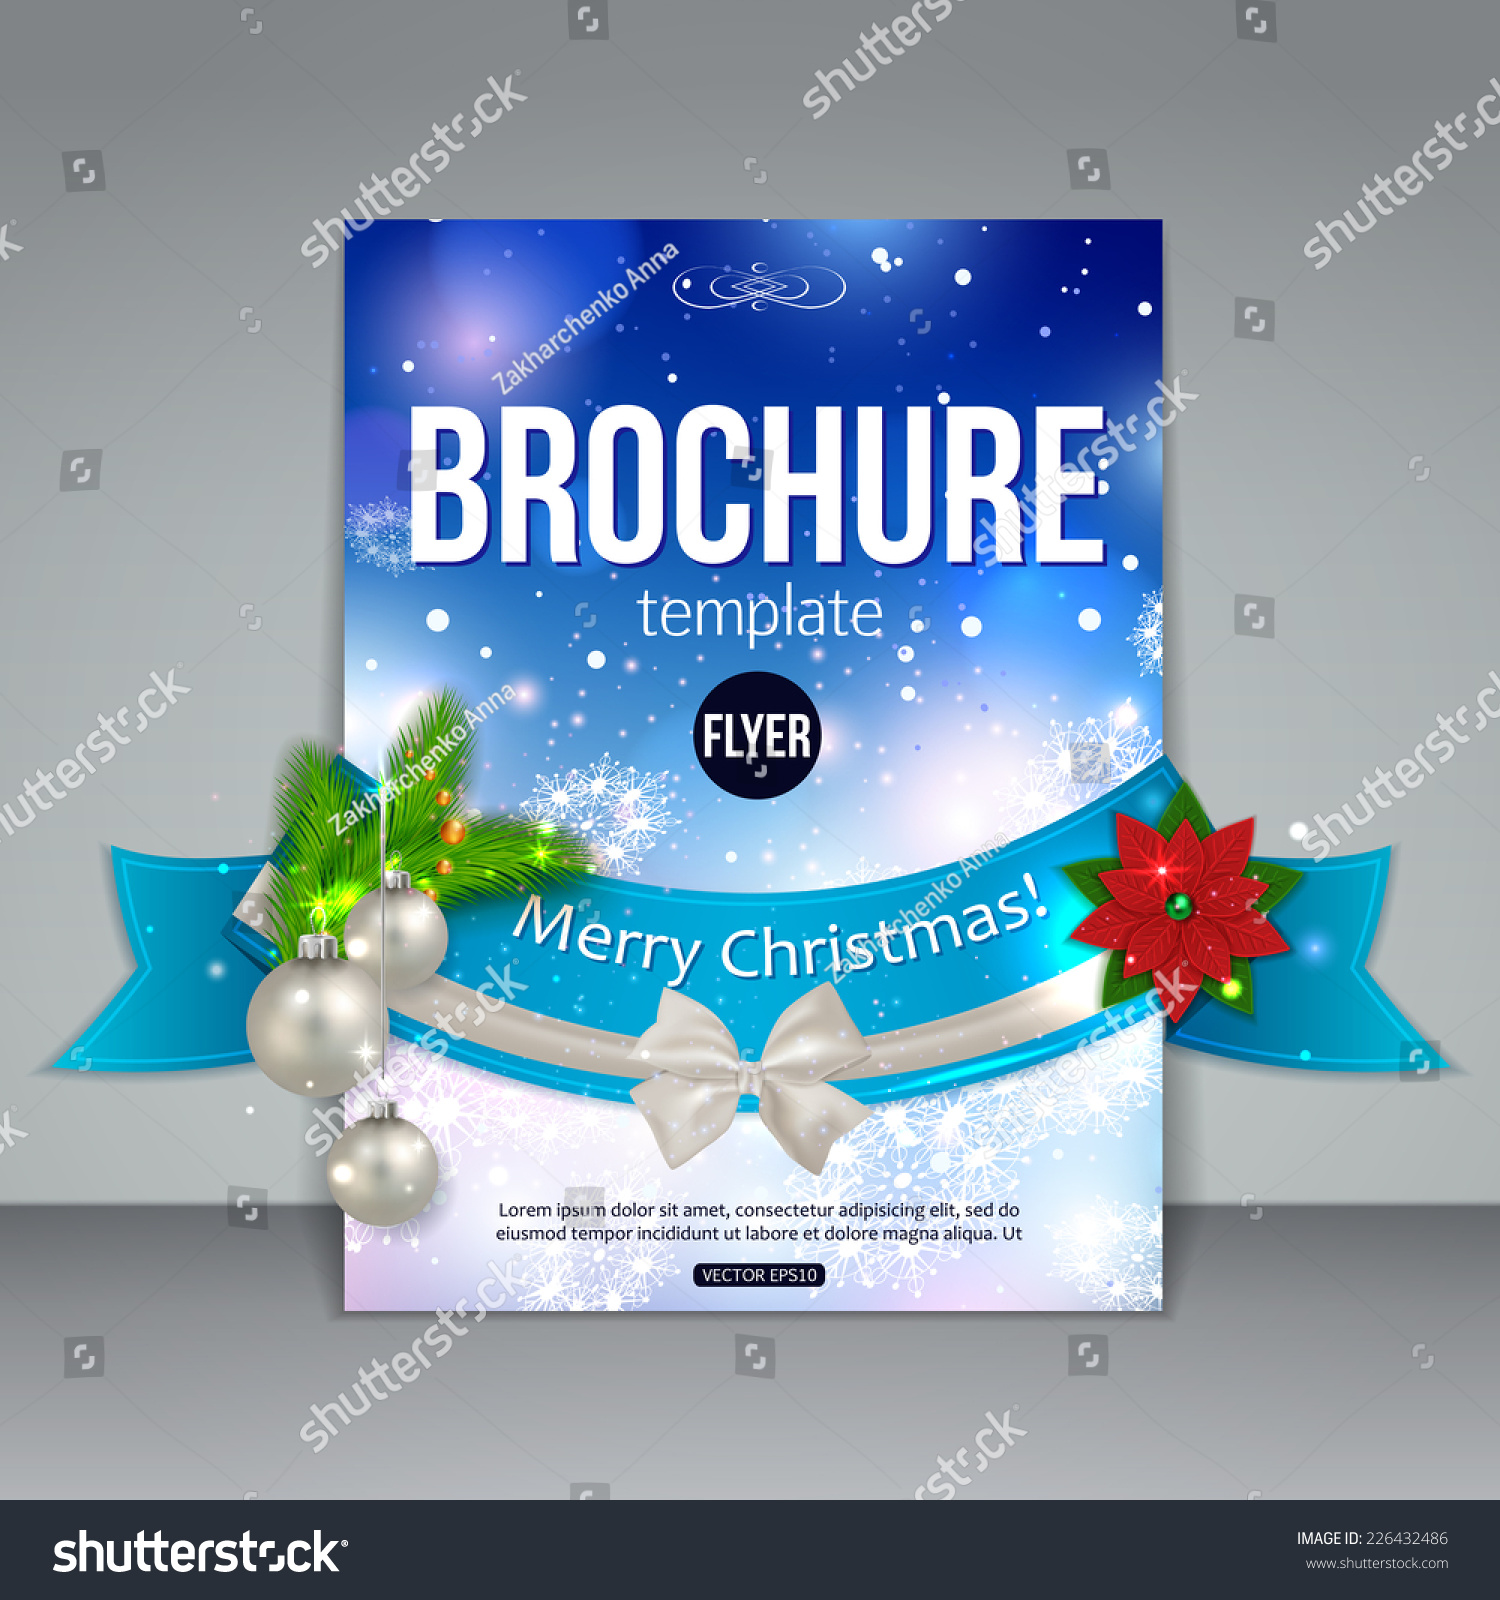 christmas brochure template abstract flyer design xmas fir save to a lightbox